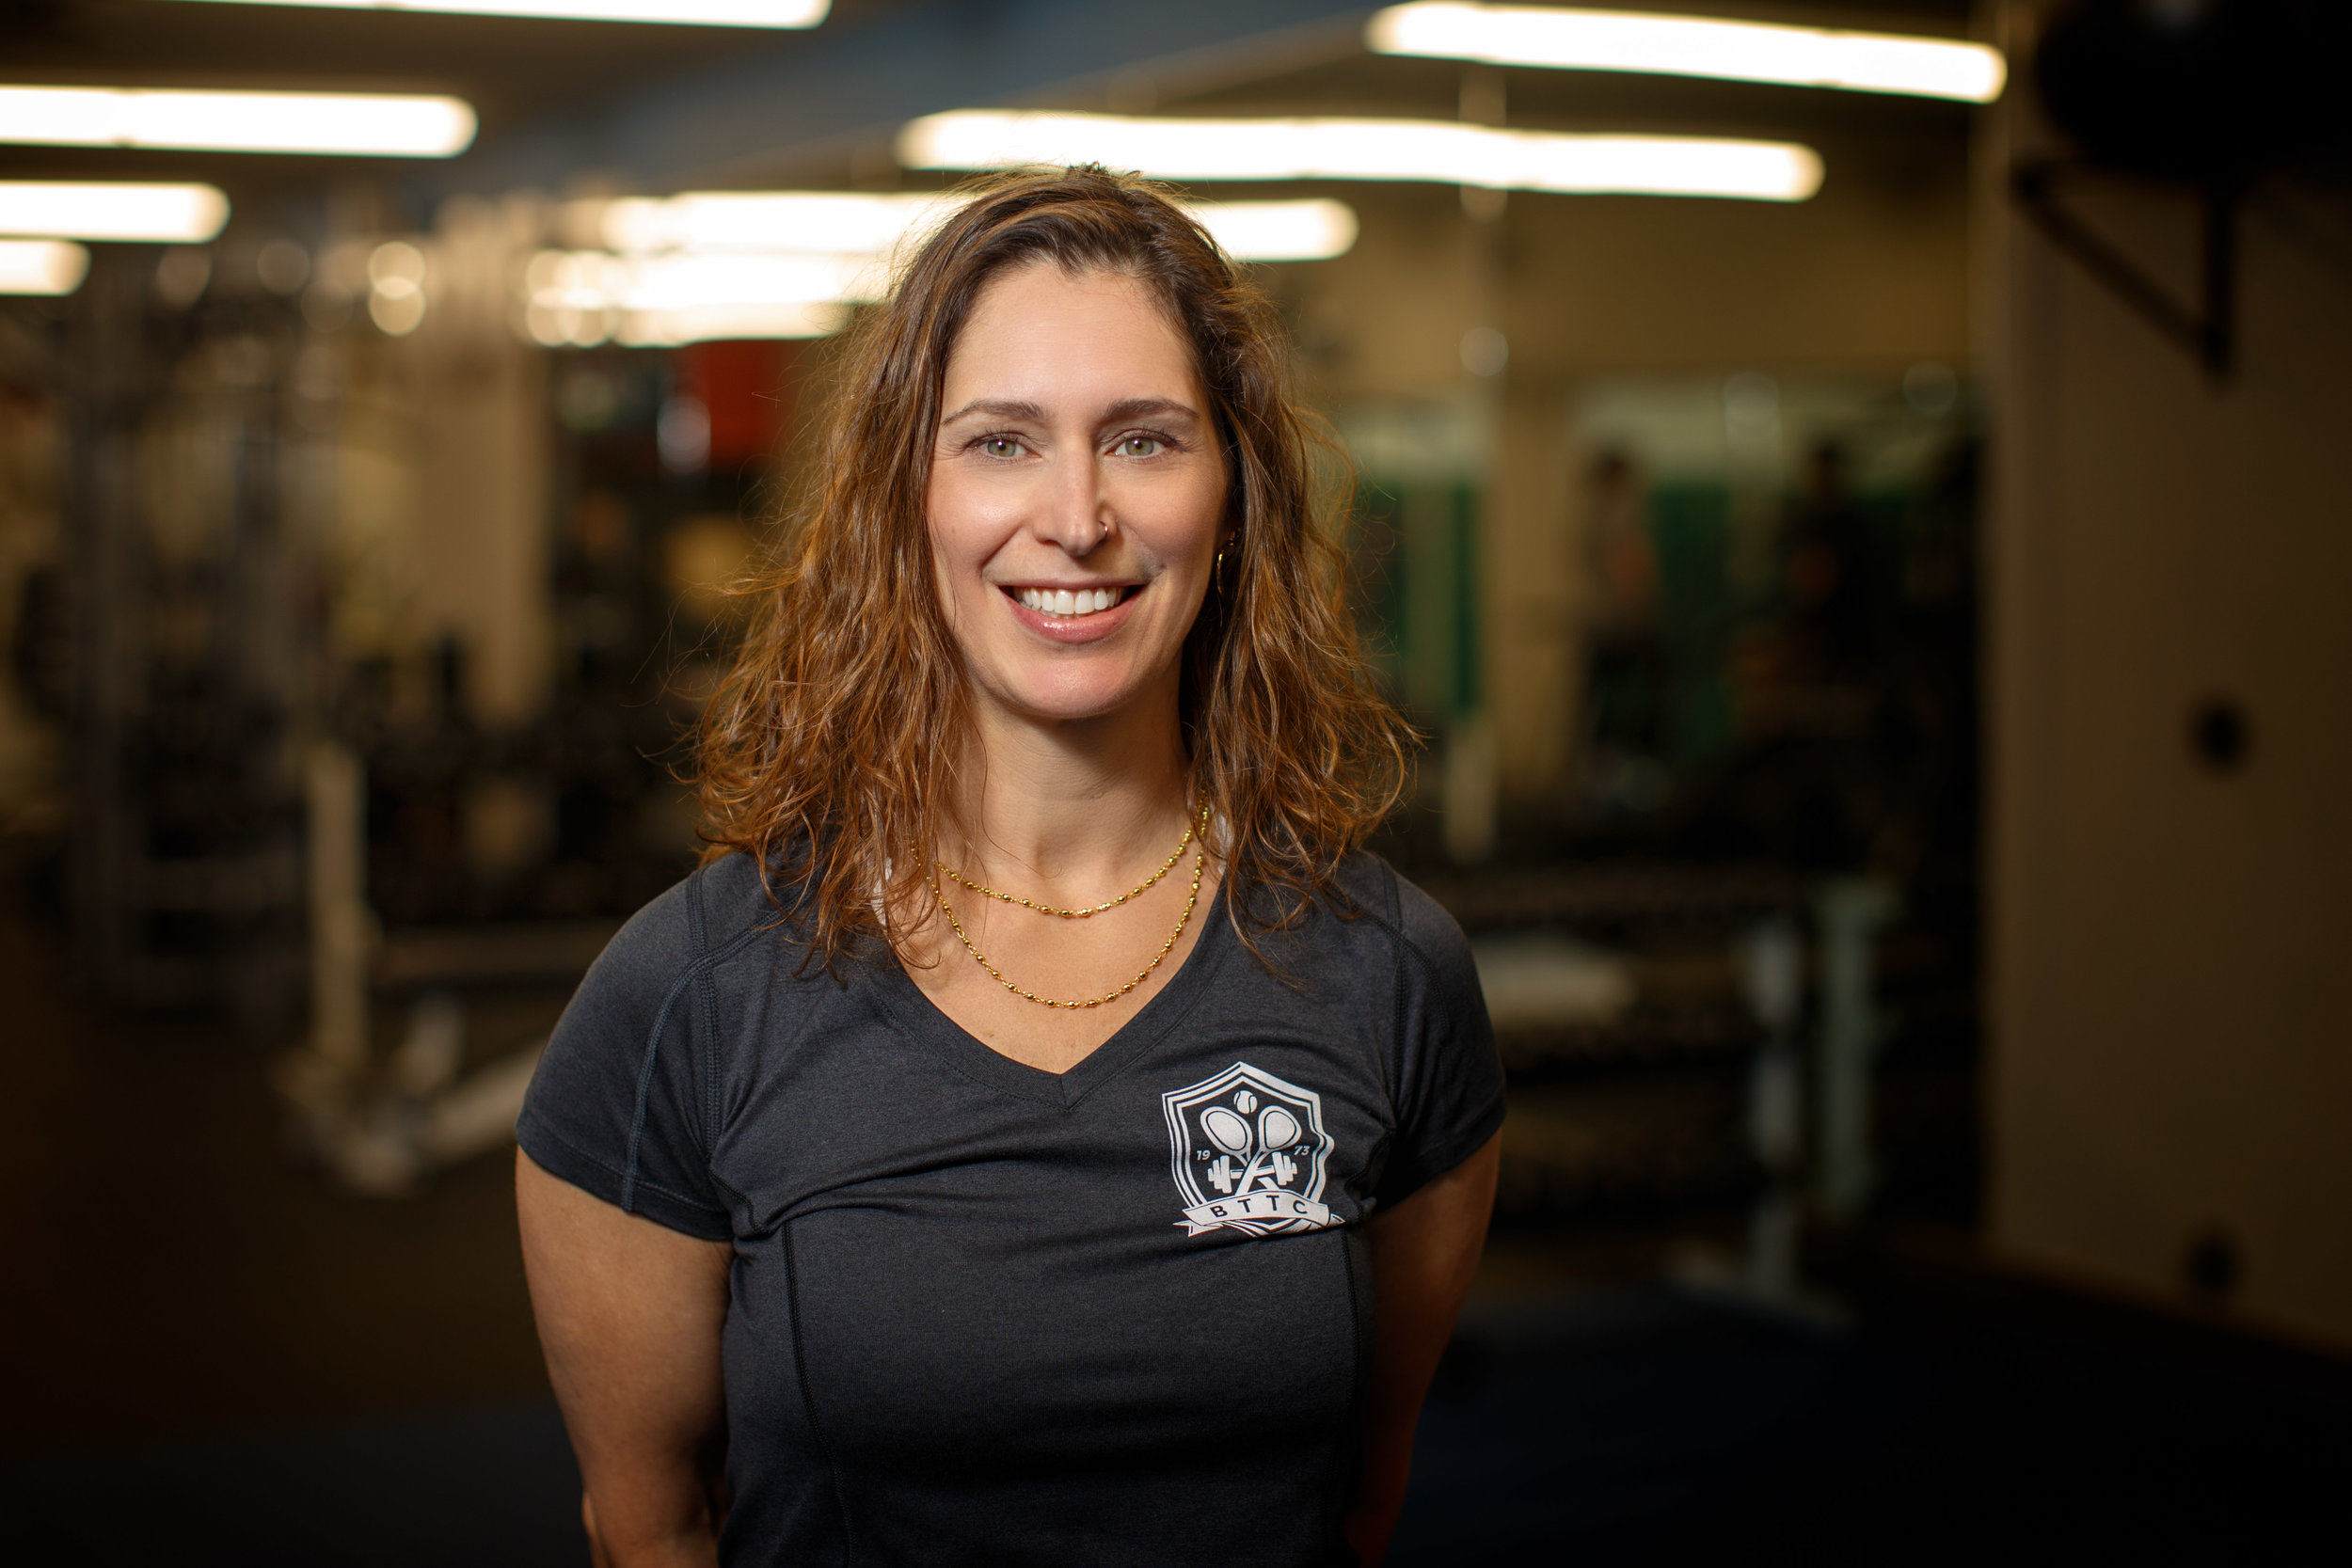 Personal Trainer Roxanne Sailors